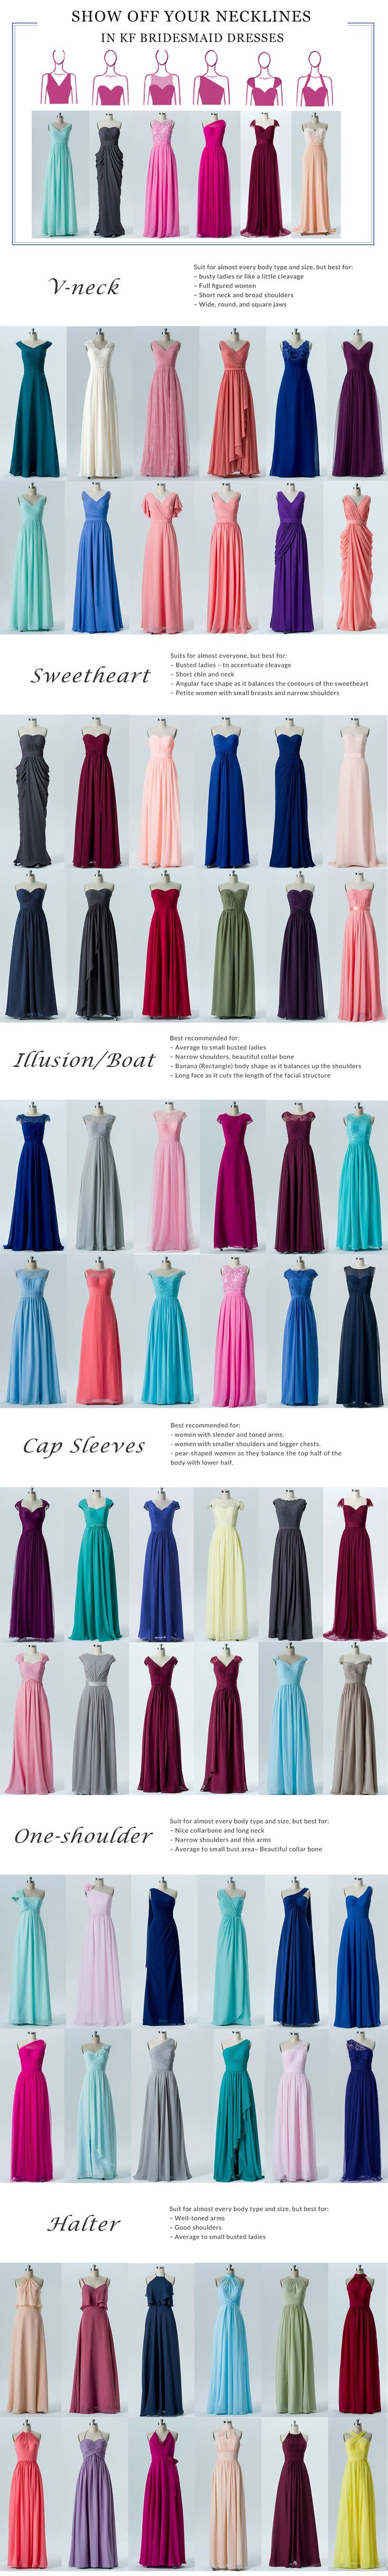 200+ bridesmaid dresses on a budget! All come in 60+ colors and plus sizes! Shop now to catch our Huge Spring Sale!